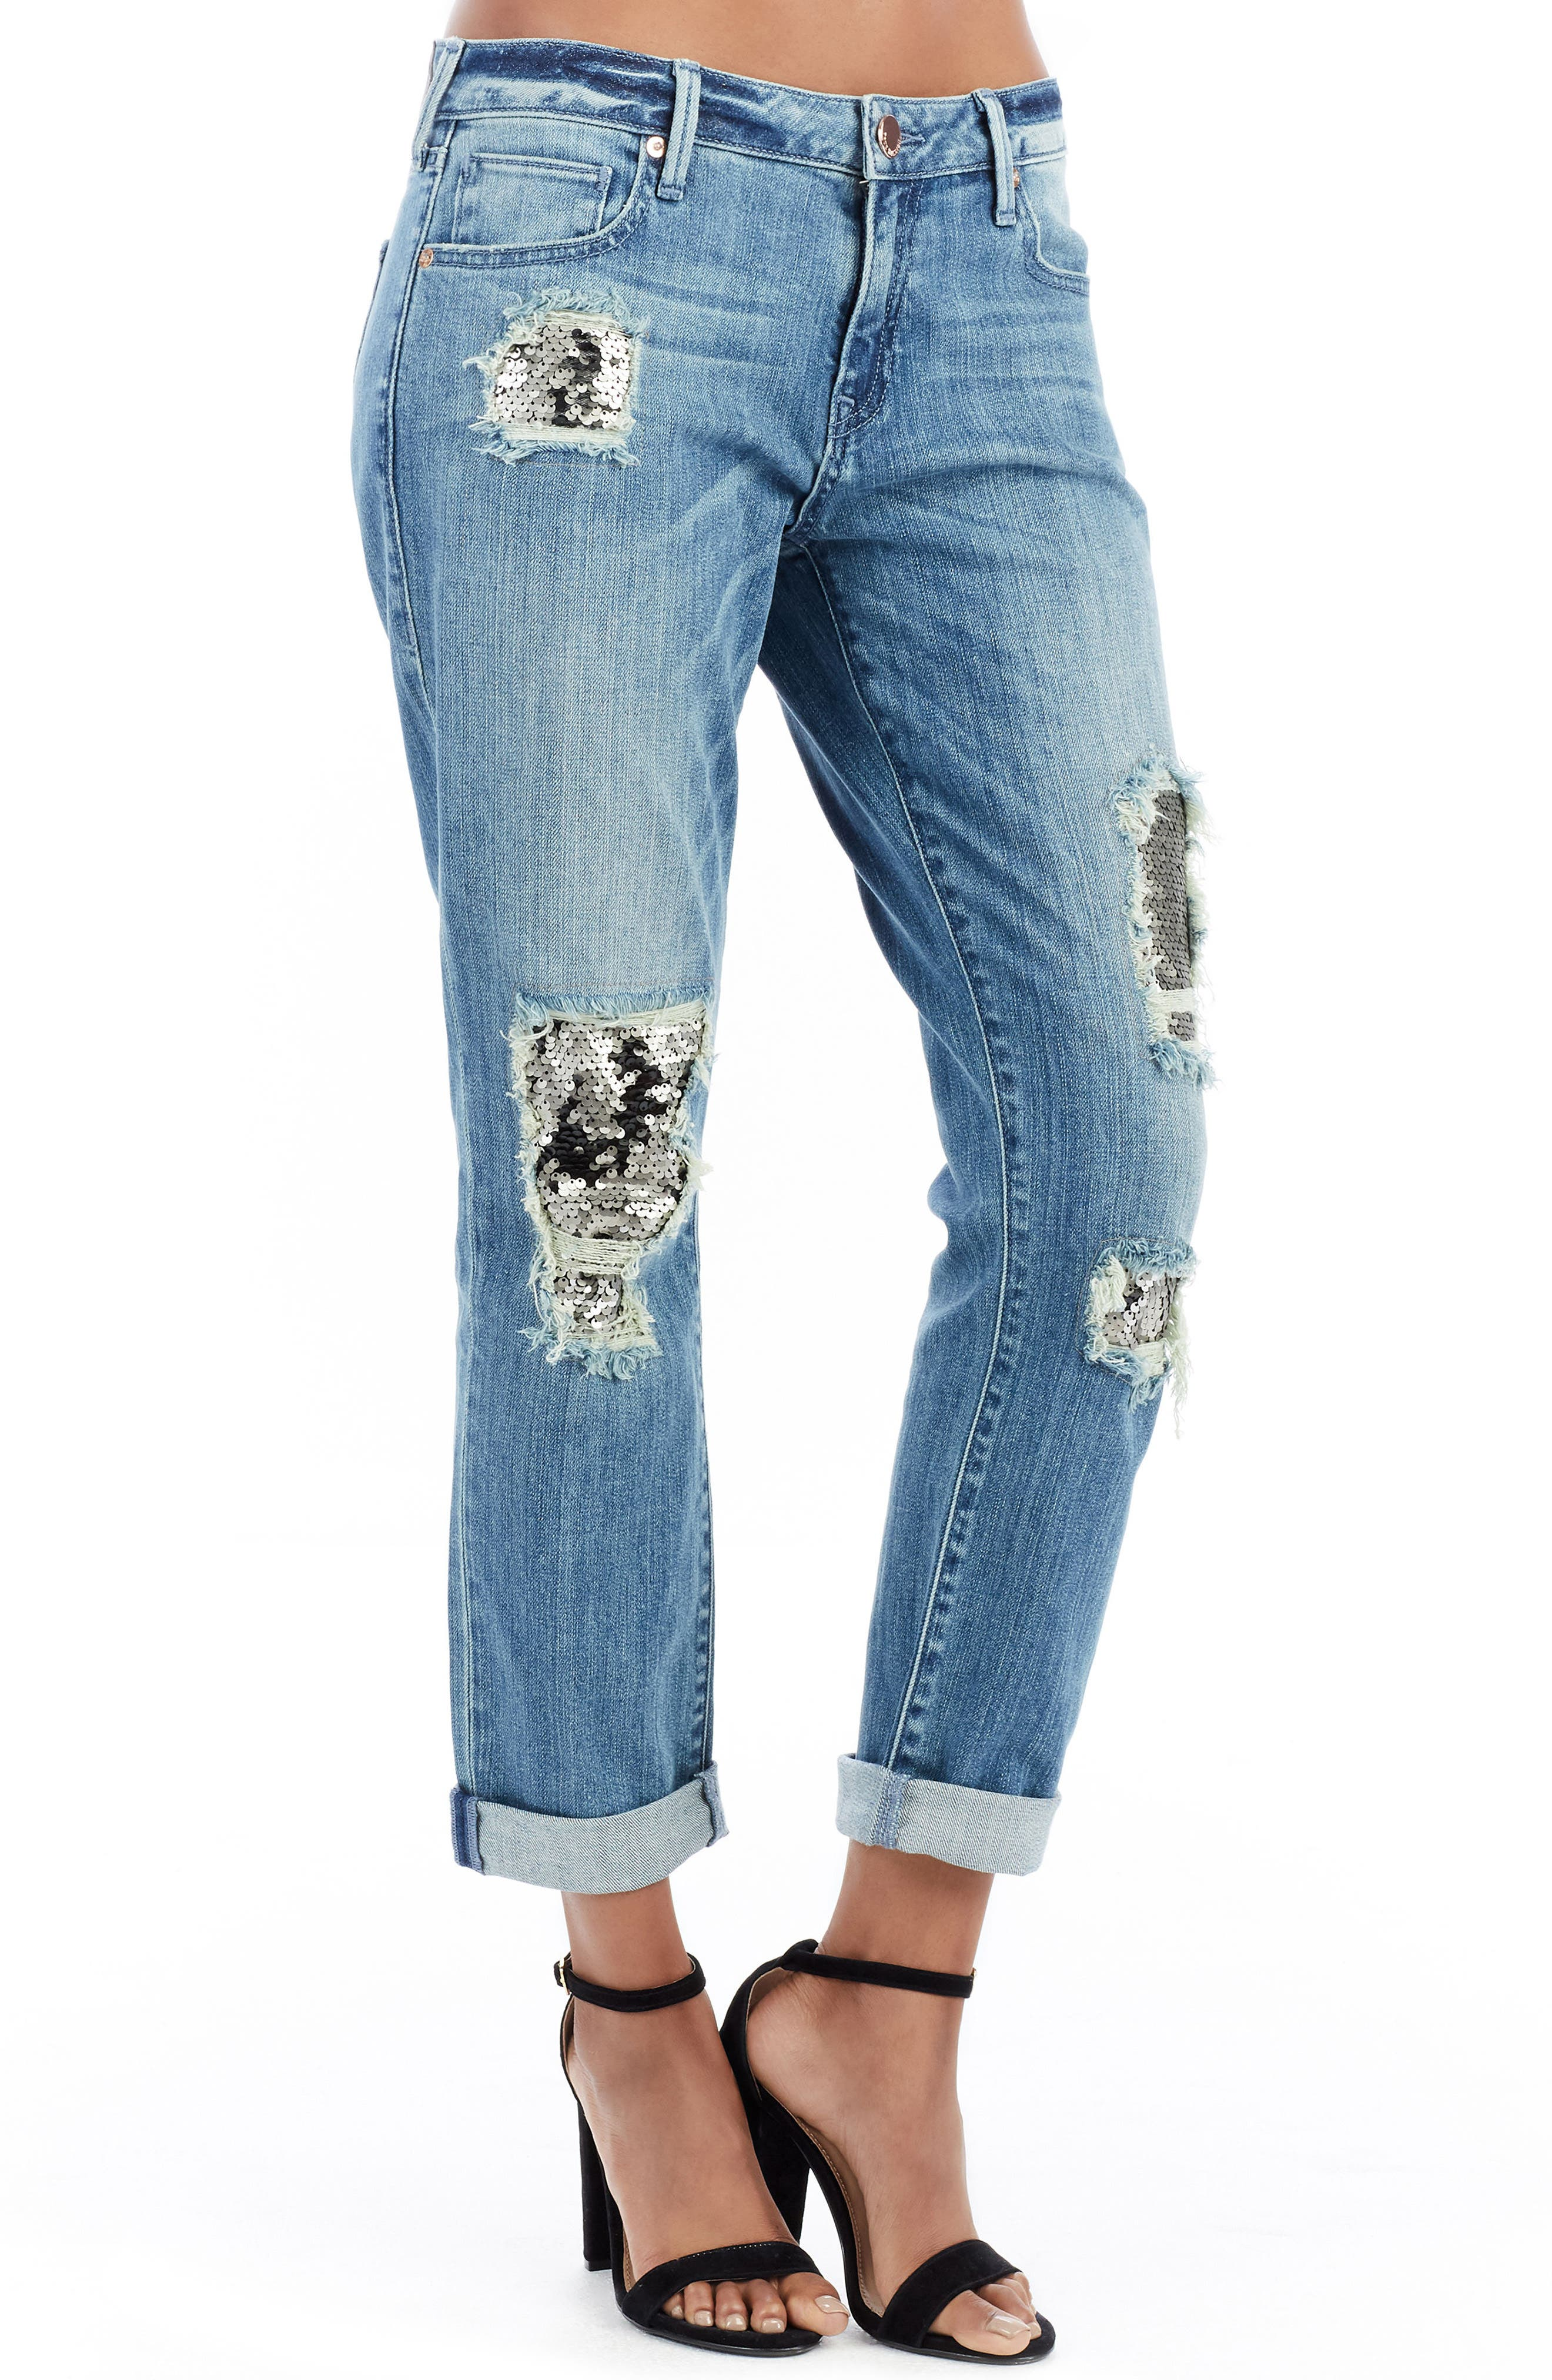 Cameron Slim Boyfriend Jeans,                             Main thumbnail 1, color,                             Dark Rebel Shadow